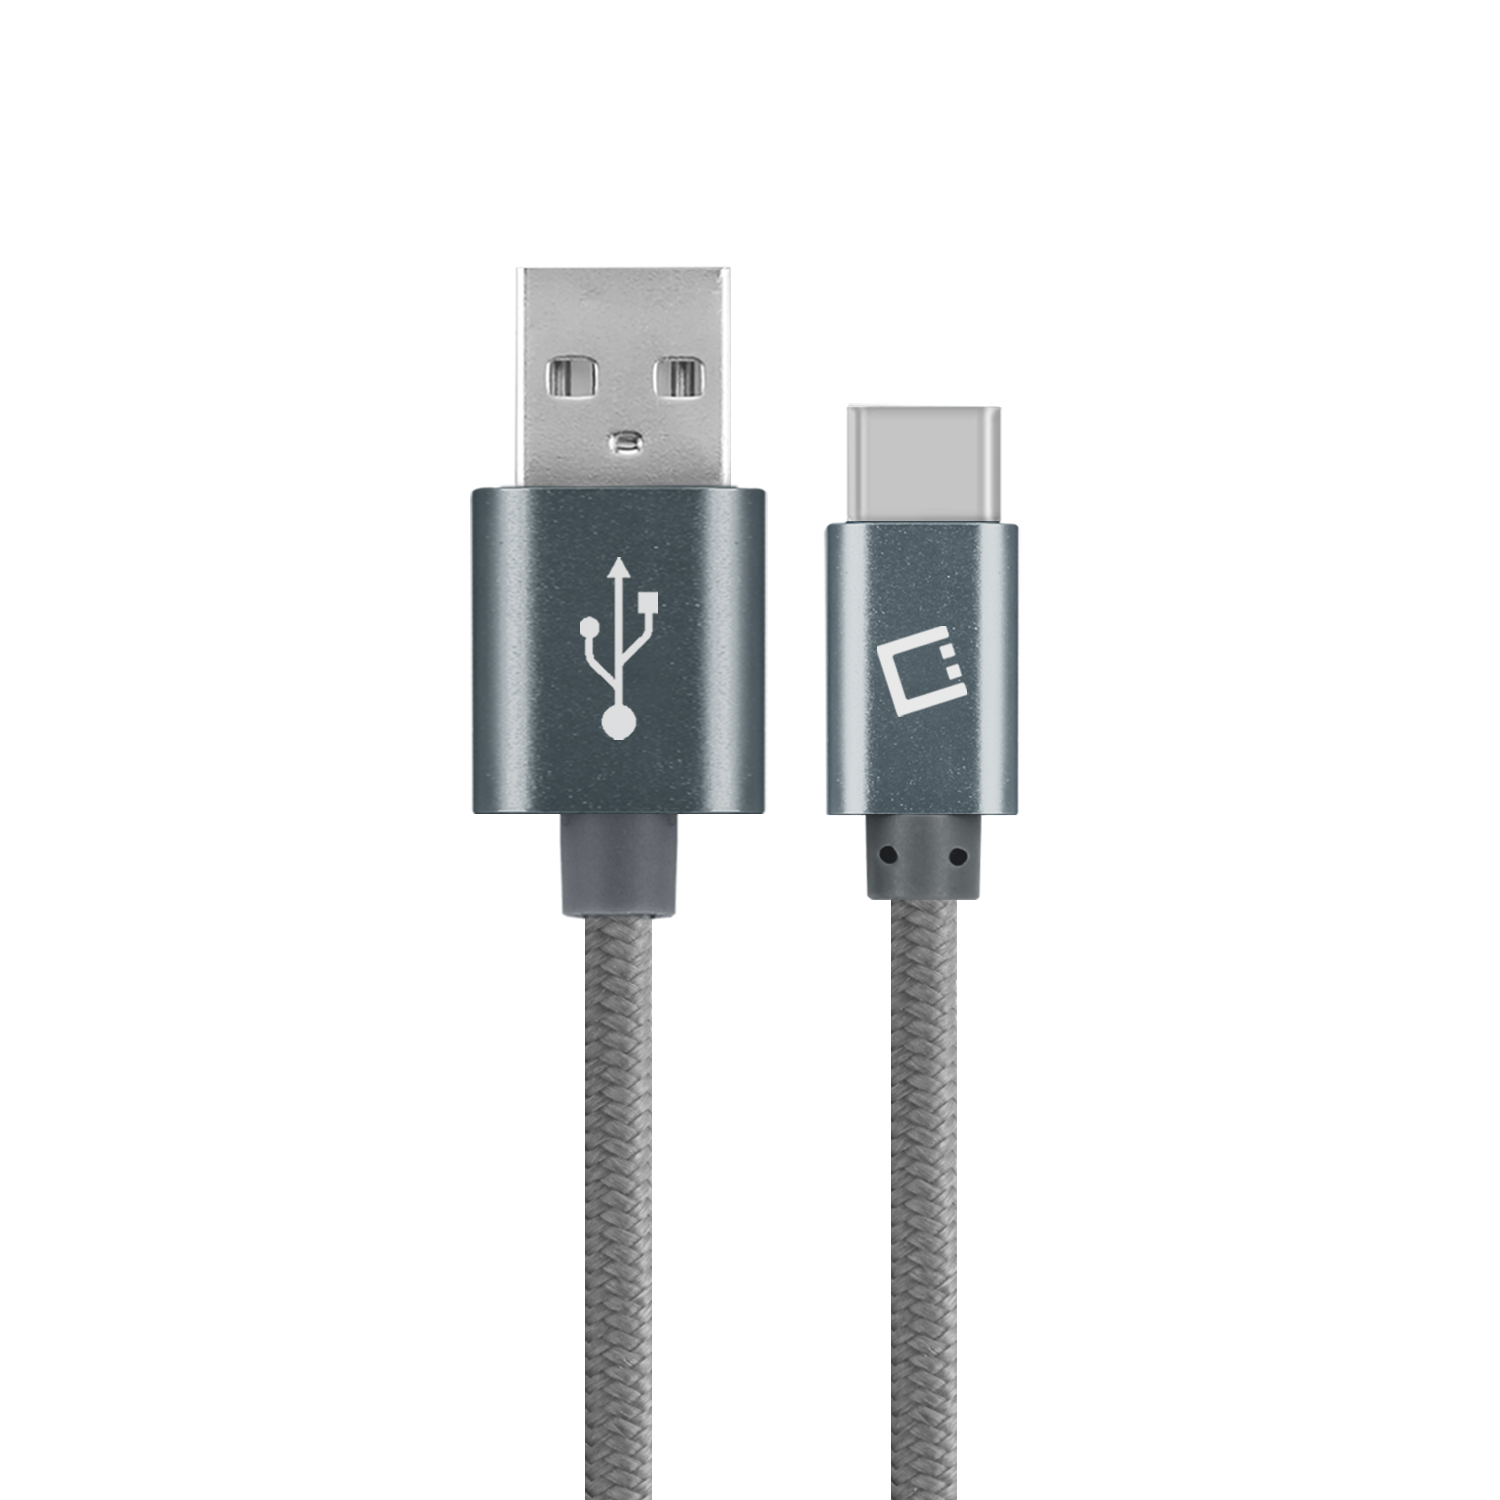 LG Velvet USB Type-C To Type-A Braided Data Power Cable Grey 10ft Braided